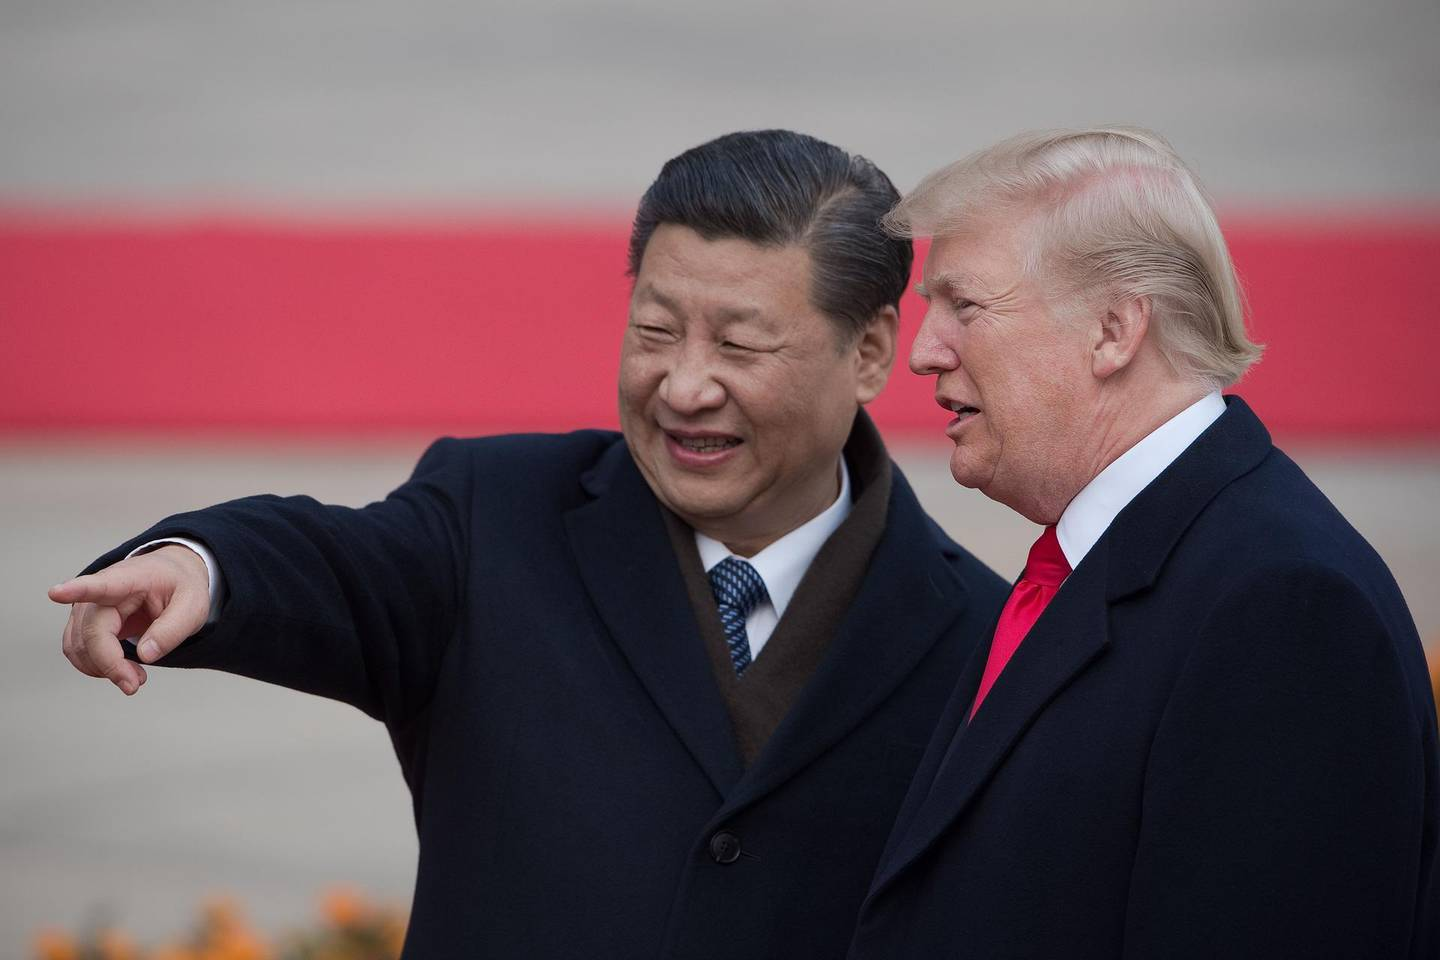 """(FILES) In this file photo taken on November 08, 2017 China's President Xi Jinping (L) and US President Donald Trump attend a welcome ceremony at the Great Hall of the People in Beijing.  The new partial trade agreement between the United States and China will be signed in the middle of next month in Washington, US President Donald Trump said on December 31, 2019. """"I will be signing our very large and comprehensive Phase One Trade Deal with China on January 15,"""" Trump tweeted moments before Wall Street was due to open. """"The ceremony will take place at the White House. High level representatives of China will be present."""" Trump said he would then travel to Beijing to continue negotiations """"at a later date.""""  / AFP / NICOLAS ASFOURI"""